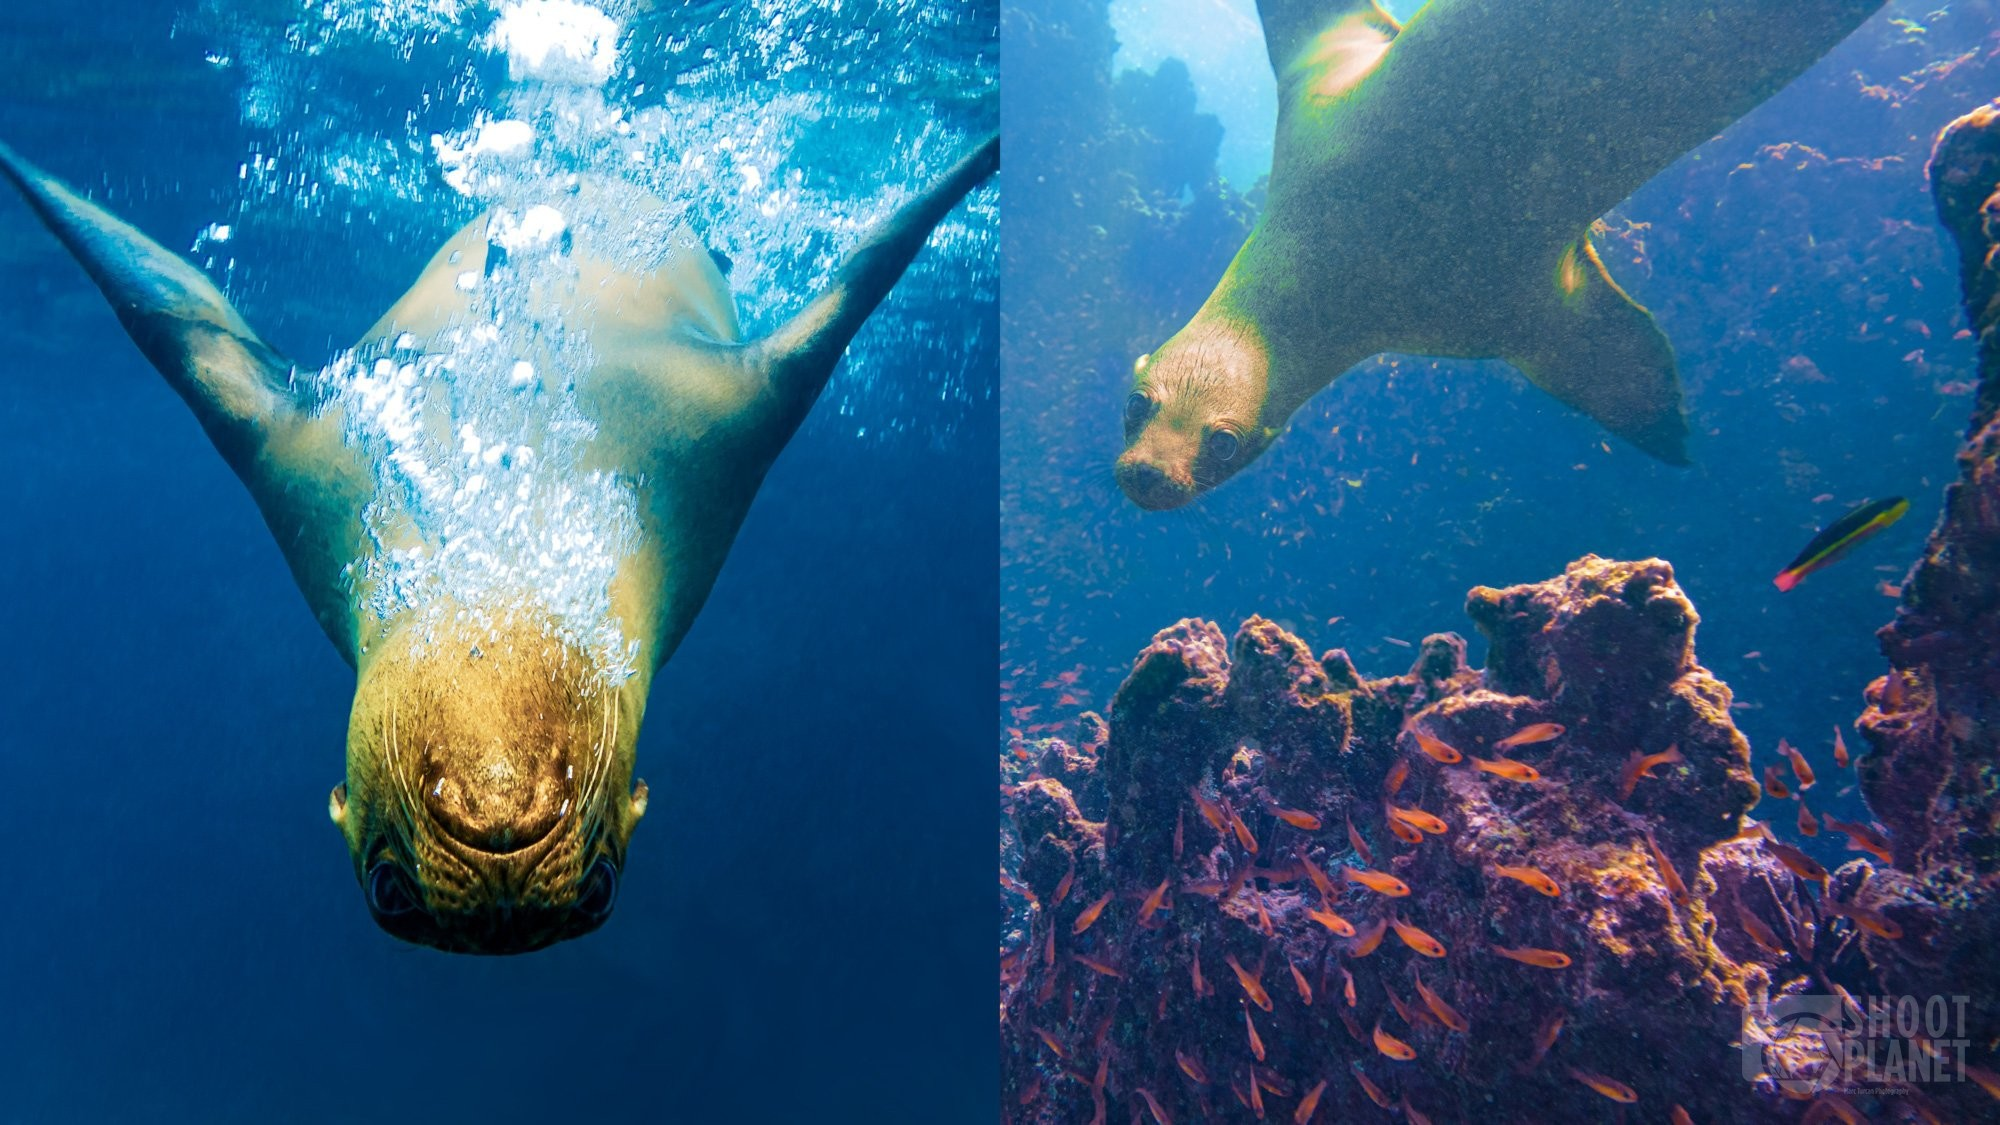 Lion seals underwater in Galapagos Islands